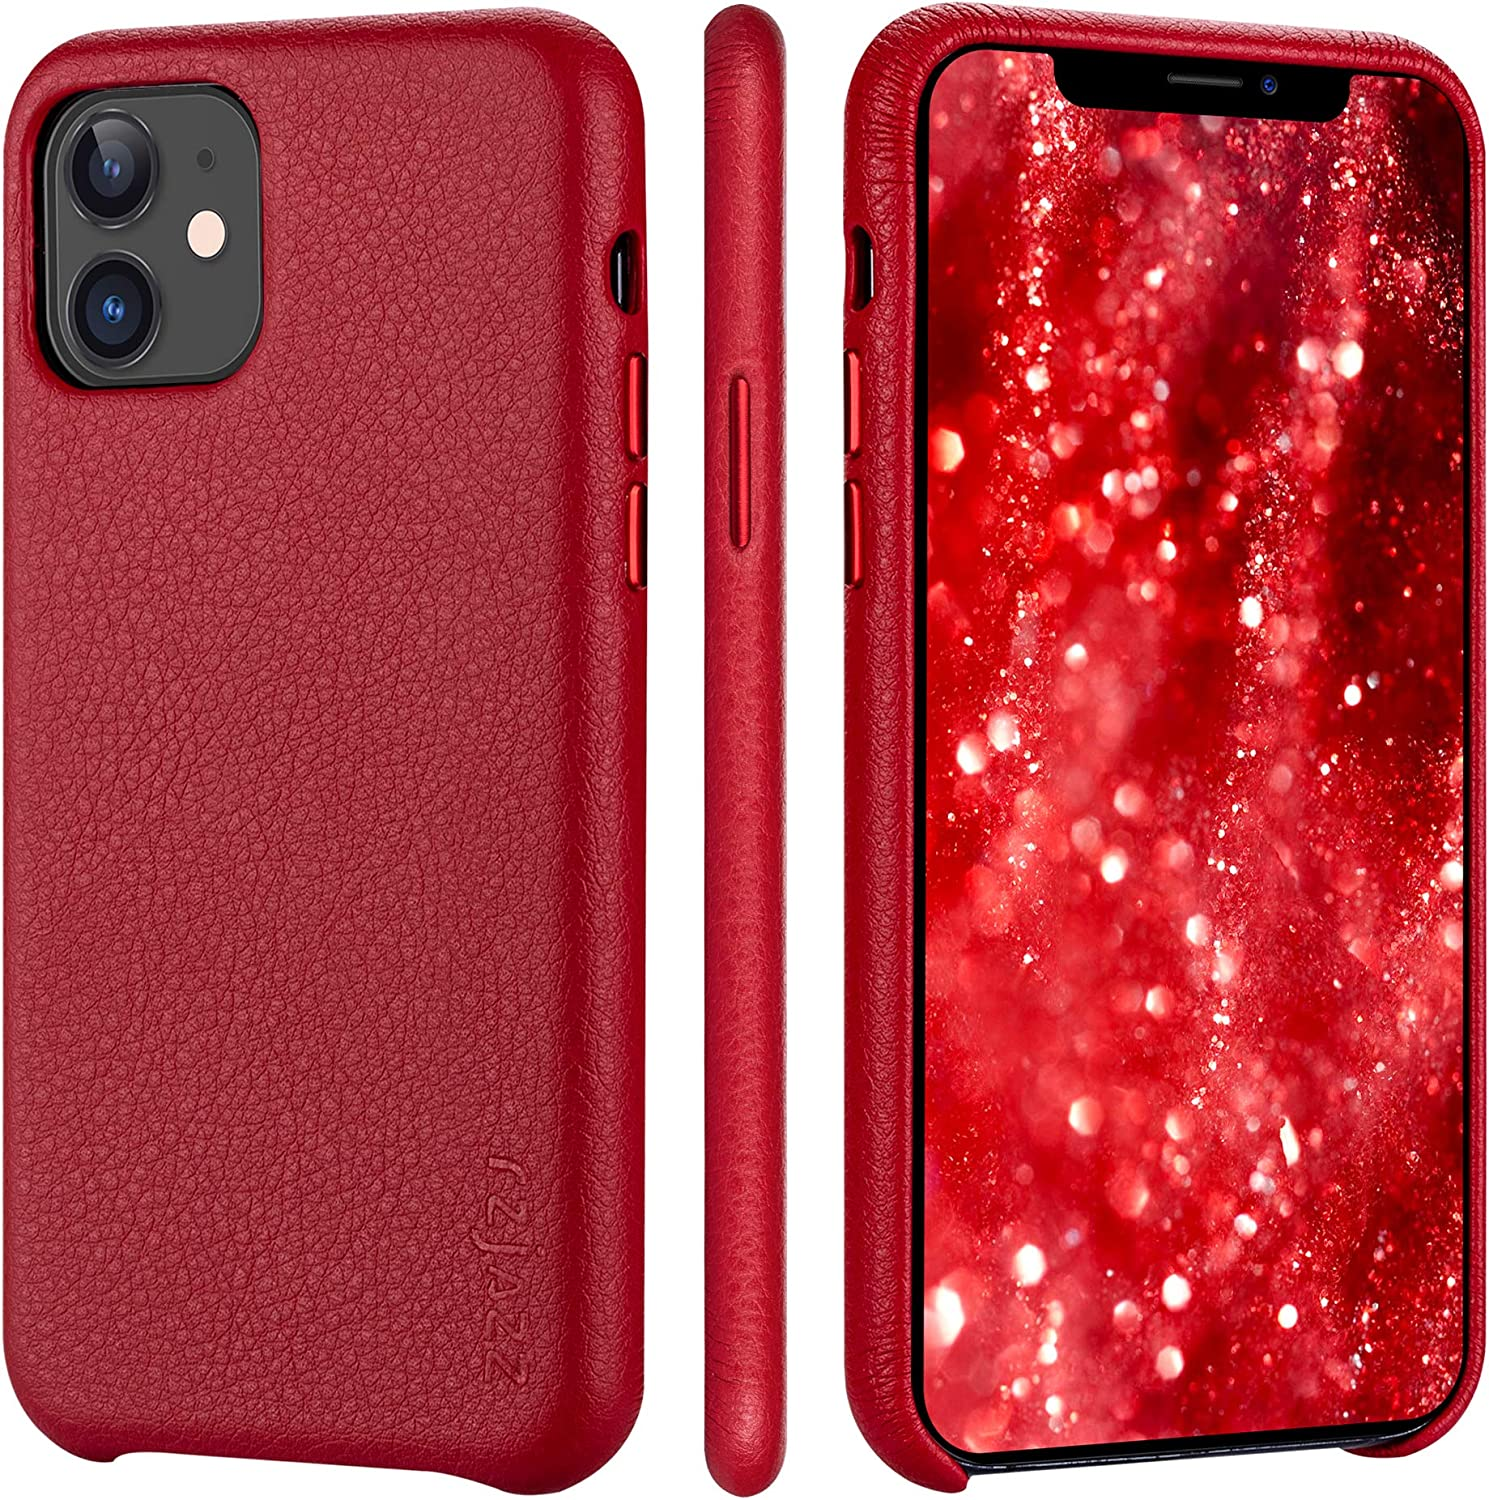 iPhone 11 Case Rejazz Anti-Scratch Iphone11 pro Cover Genuine Leather Apple iPhone Cases for iPhone 11 (6.1 Inch) (Red)